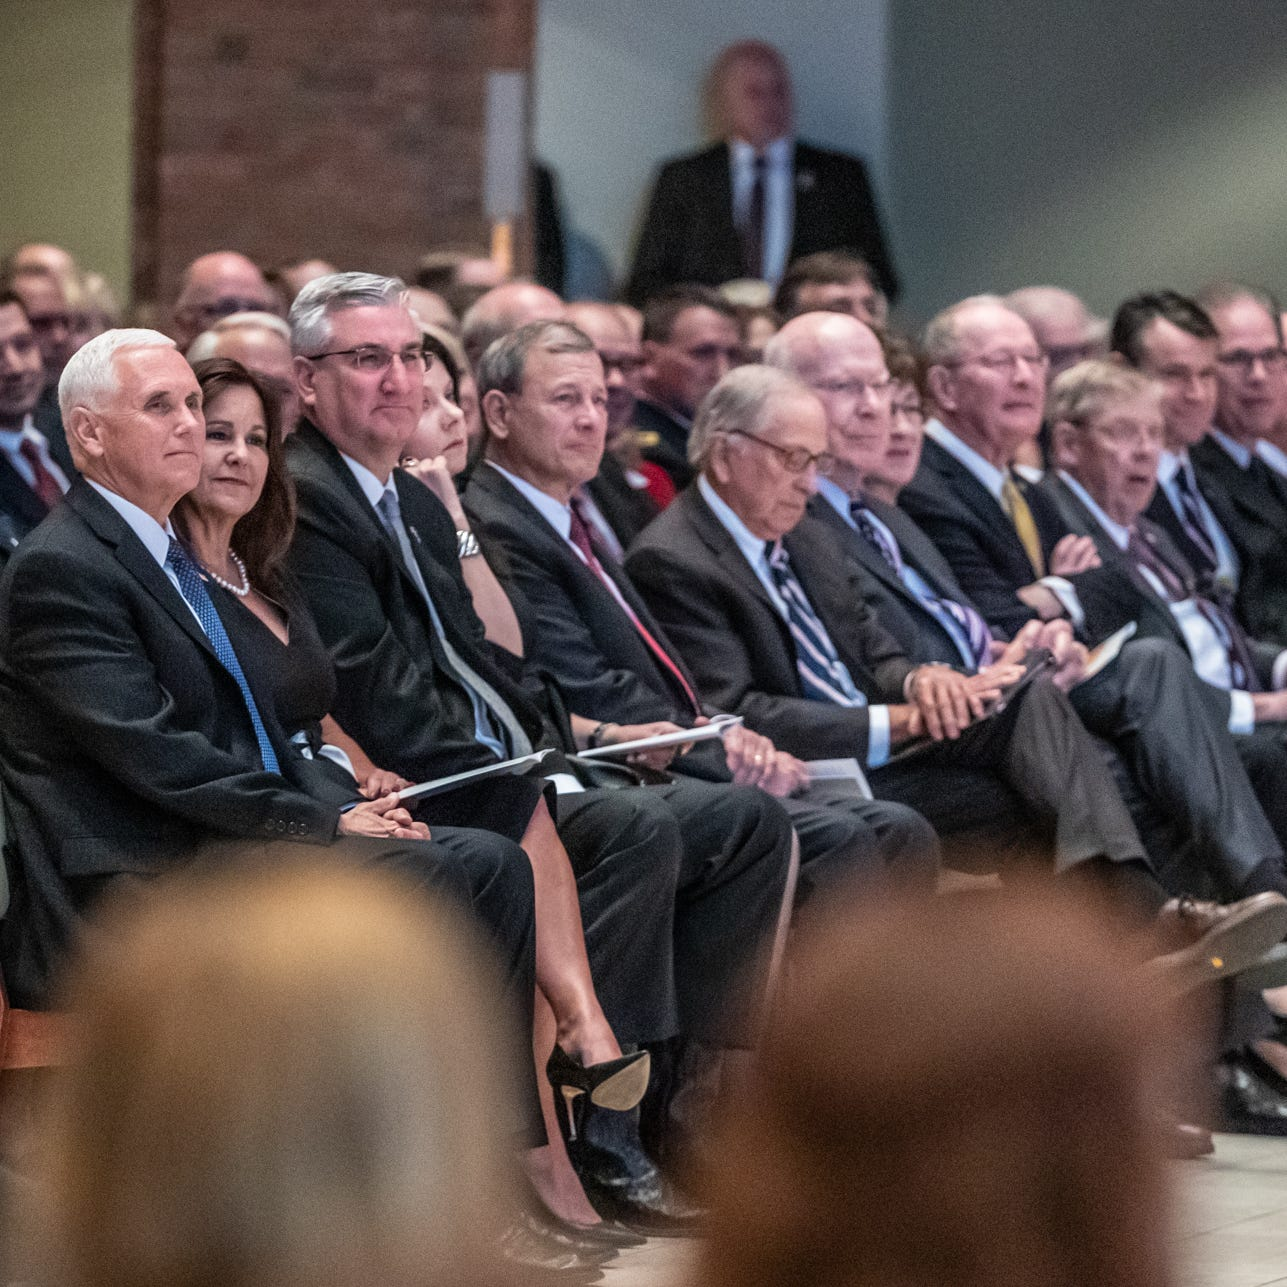 Vice President Mike Pence (from left), his wife Karen Pence, Indiana Gov. Eric Holcomb, and his wife Janet Holcomb and other state and a national officials attend the memorial of former U.S. Sen. Richard Lugar held at Saint Luke's United Methodist Church in Indianapolis, on Wednesday, May 15, 2019. Lugar served as mayor of Indianapolis from 1968 to 1975 and U.S. senator from 1977 to 2013. He died April 28, 2019, at the age of 87.